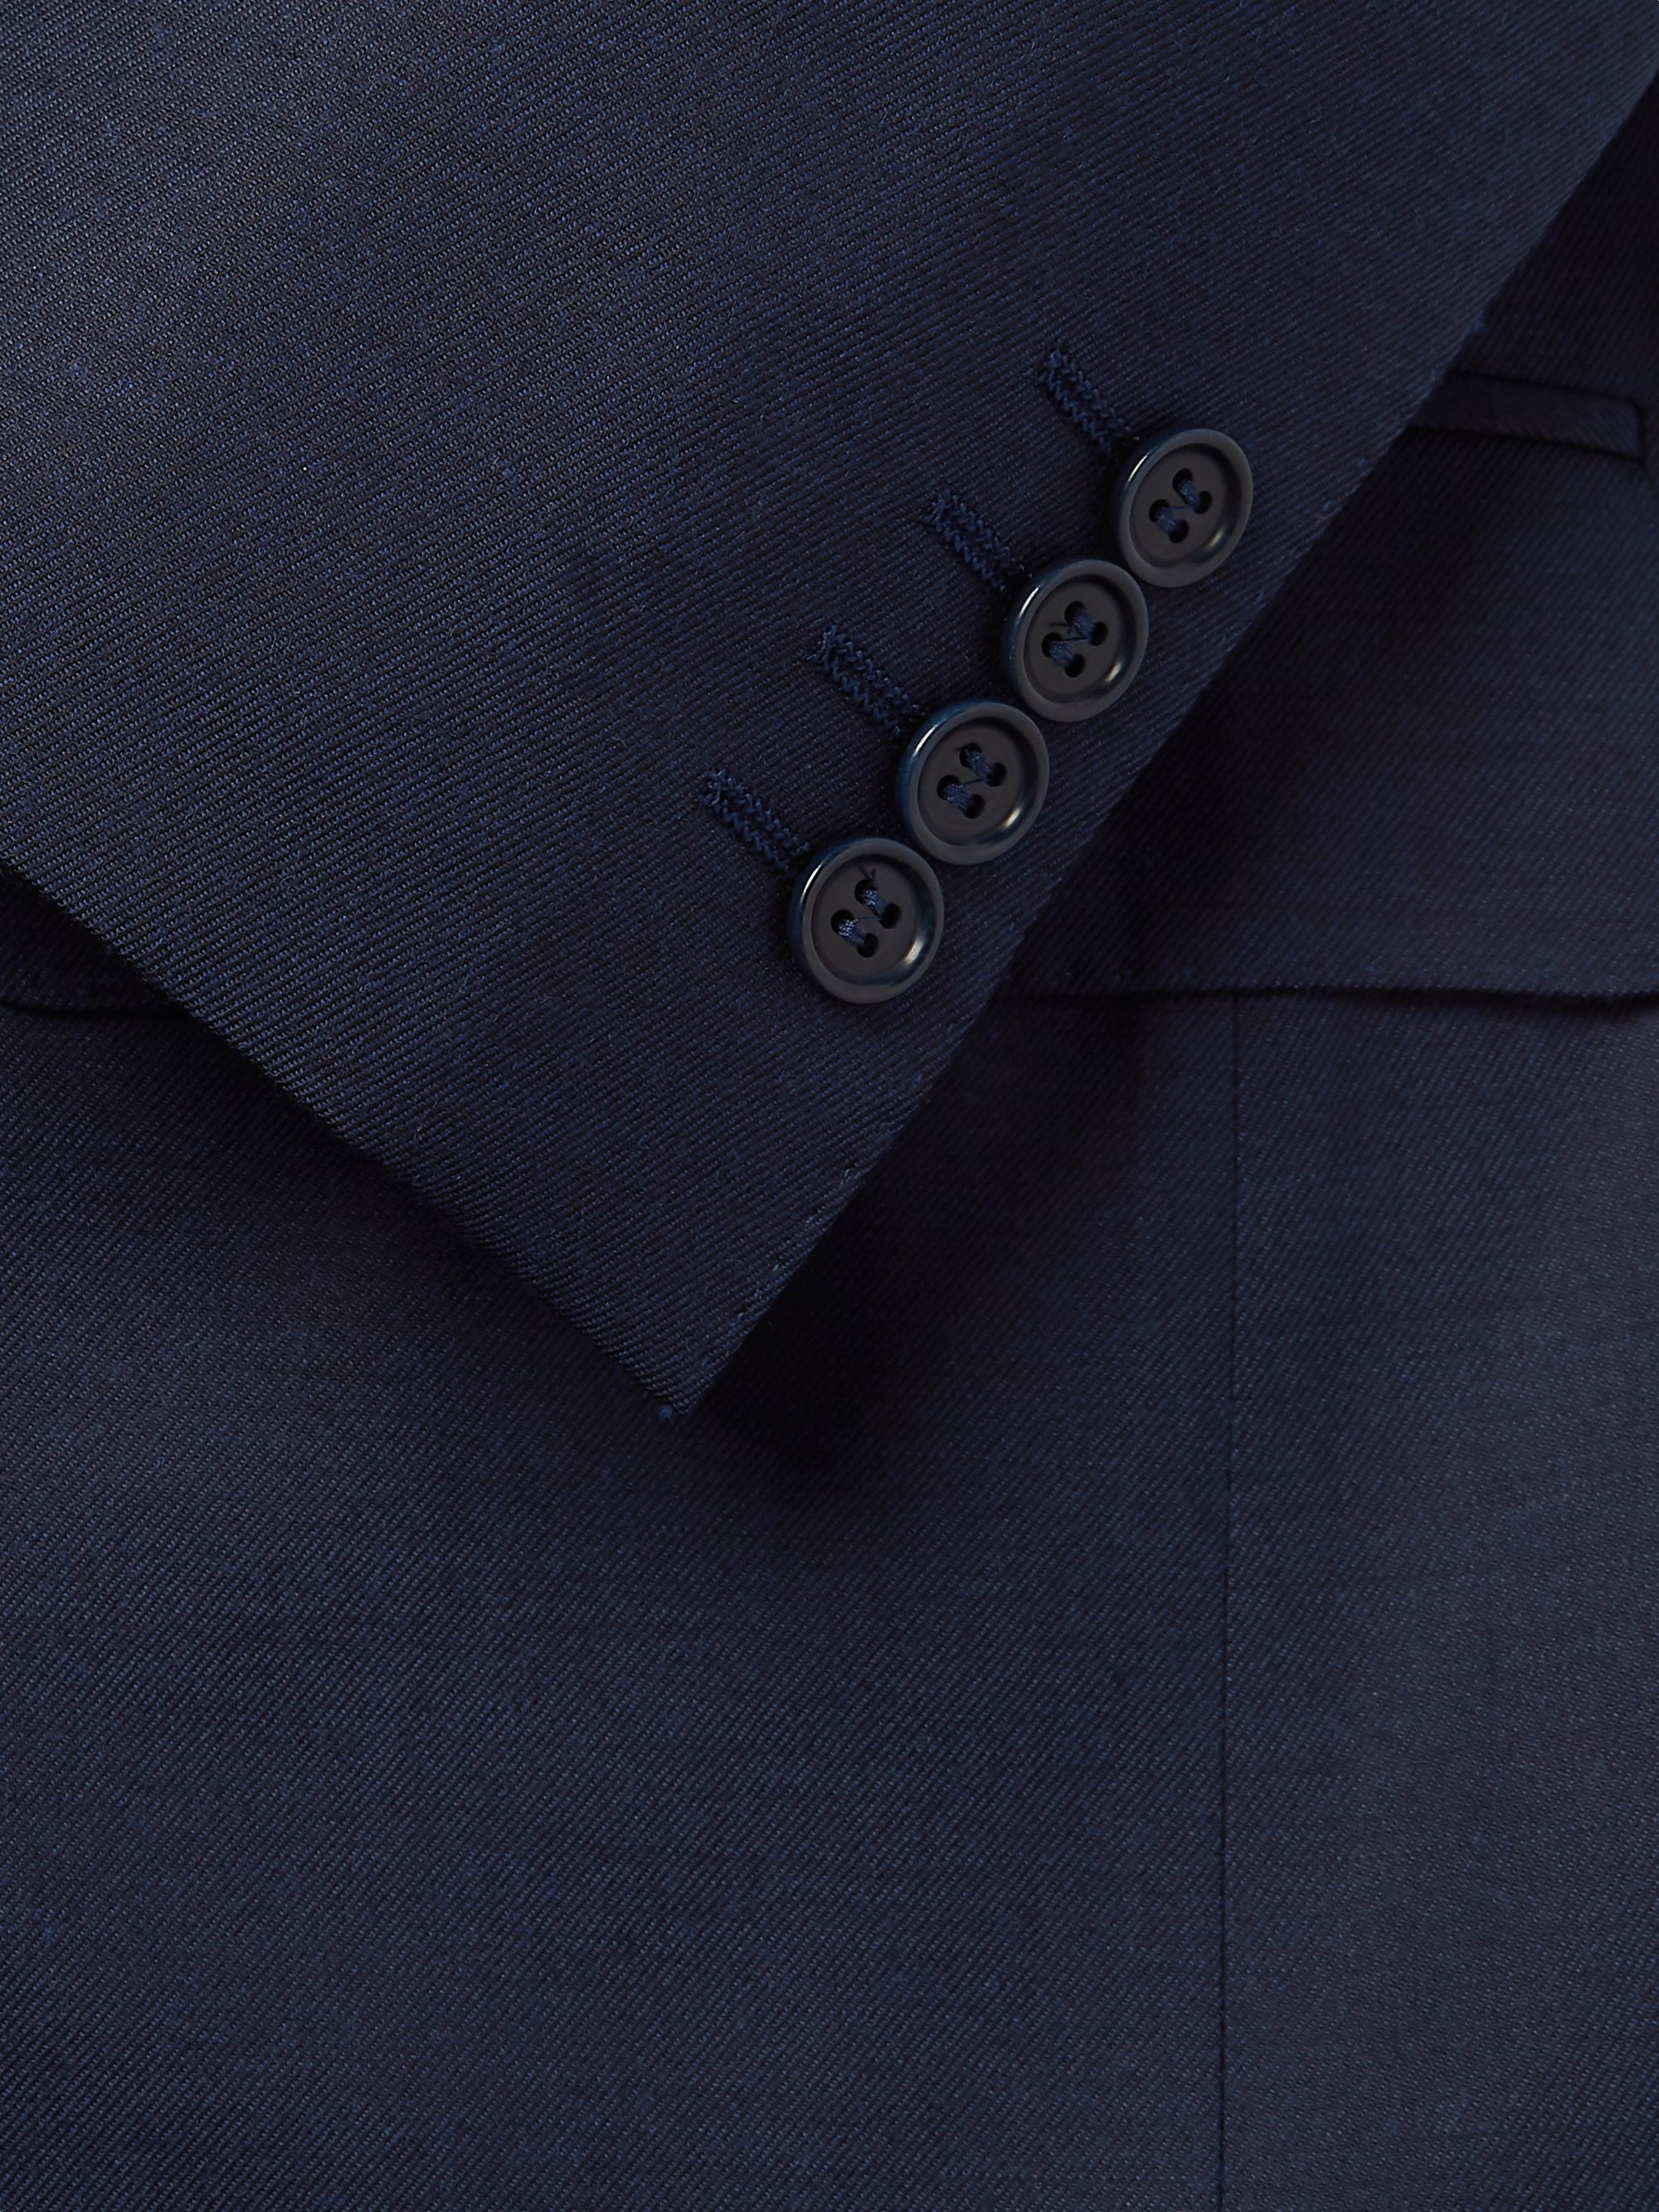 Canali Navy Slim-Fit Wool-Twill Suit Jacket